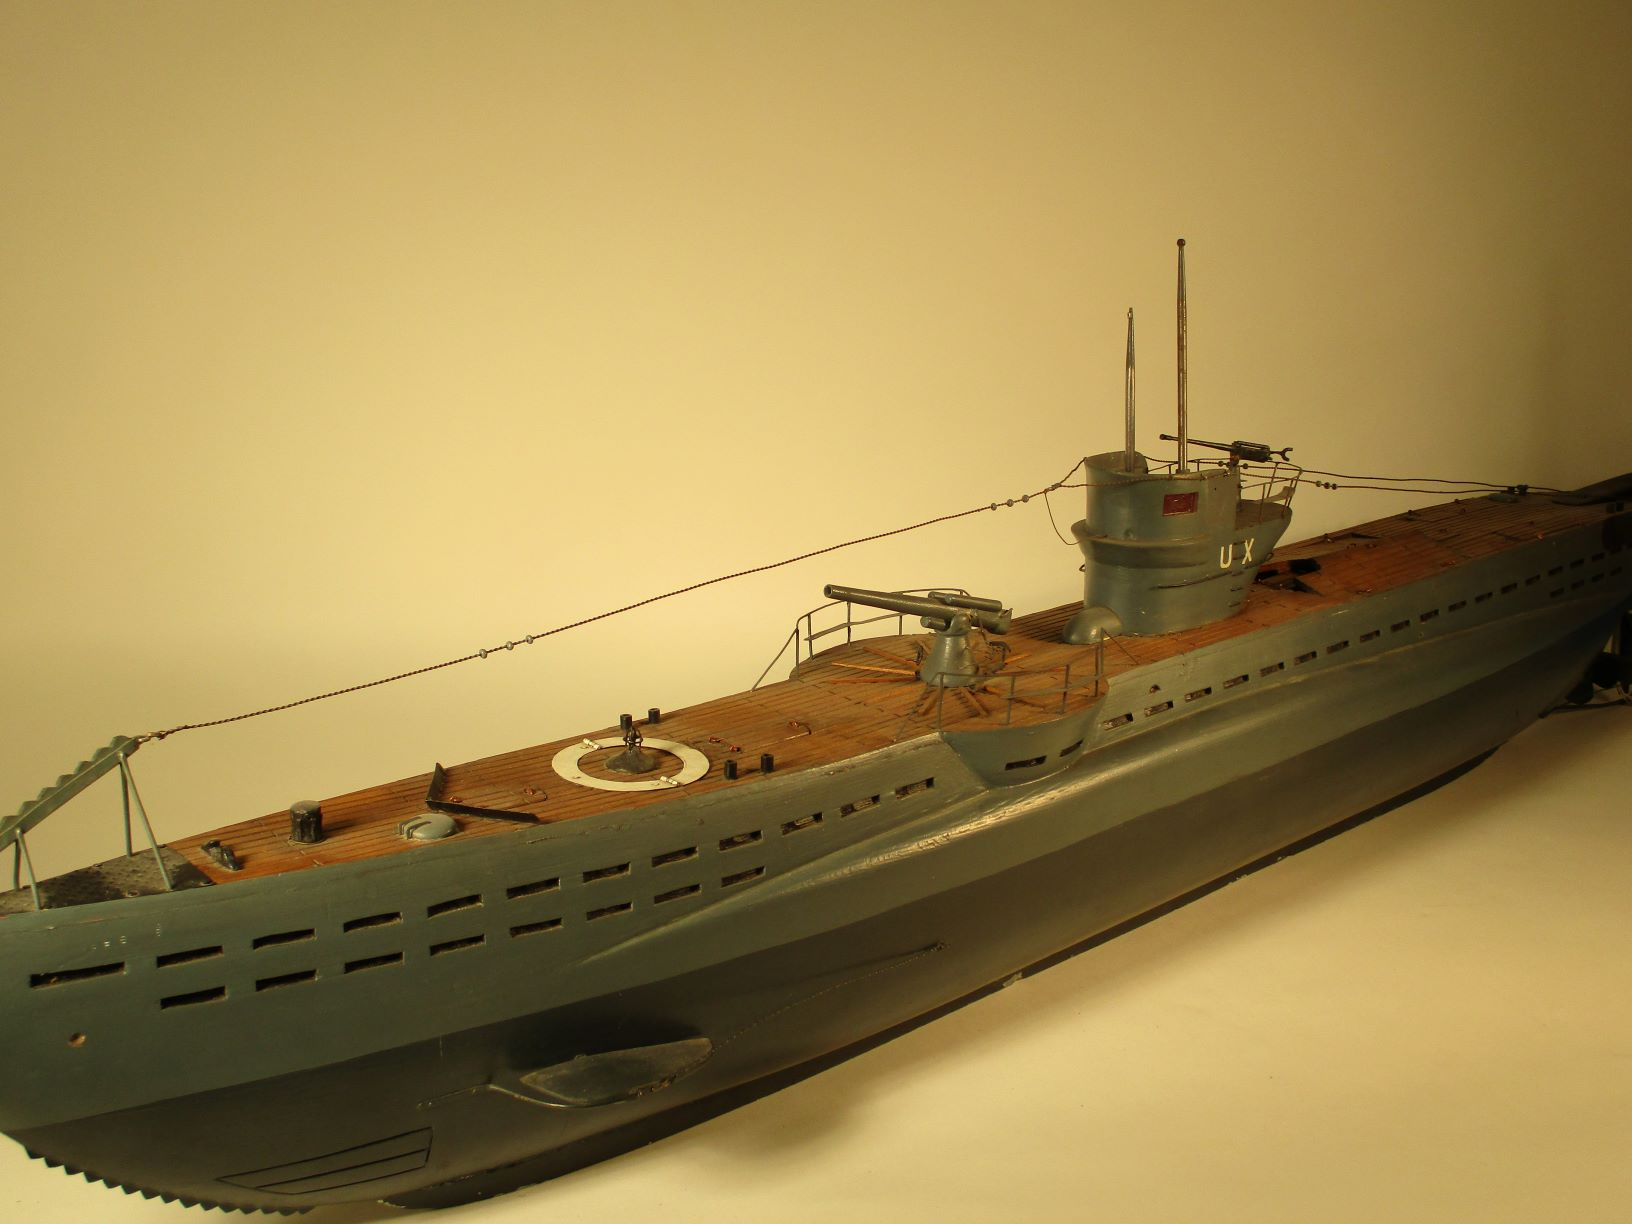 Maritime Museum of BC Collection, POW model, accession # 3170